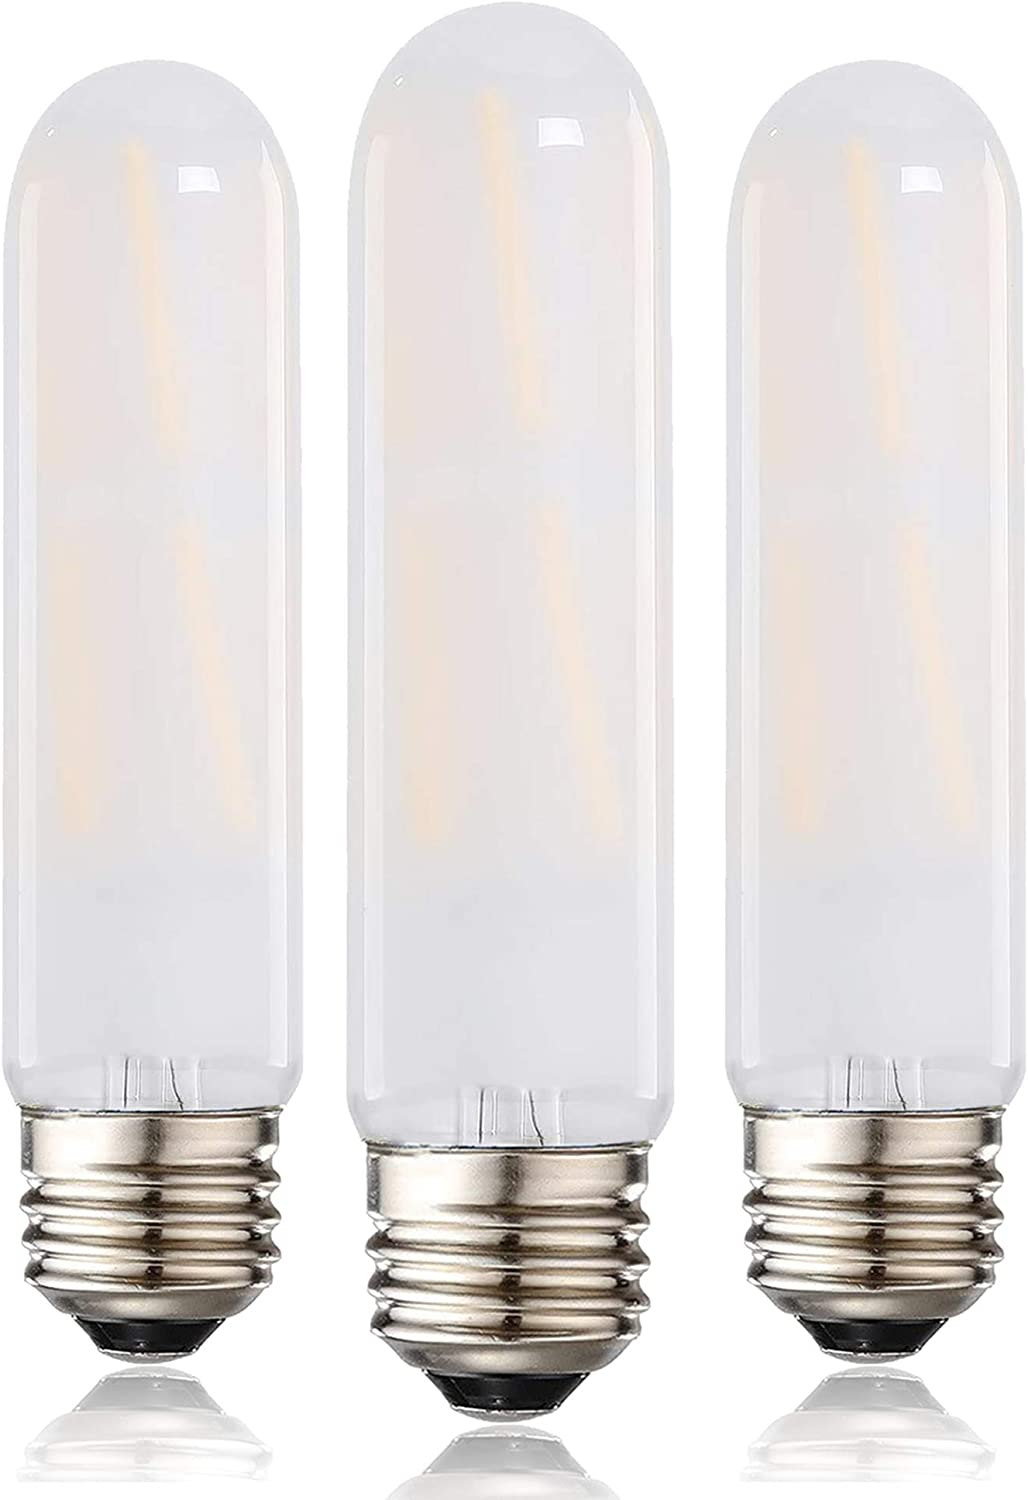 LEOOLS T10 Led Frosted Bulb, 8W Dimmable Tubular LED Light Bulb, 75 Watt Incandescent Bulb Equivalent, 4000K Daylight, Frosted Glass, E26 Base, for Cabinet Display Cabinet etc,3 Pack.